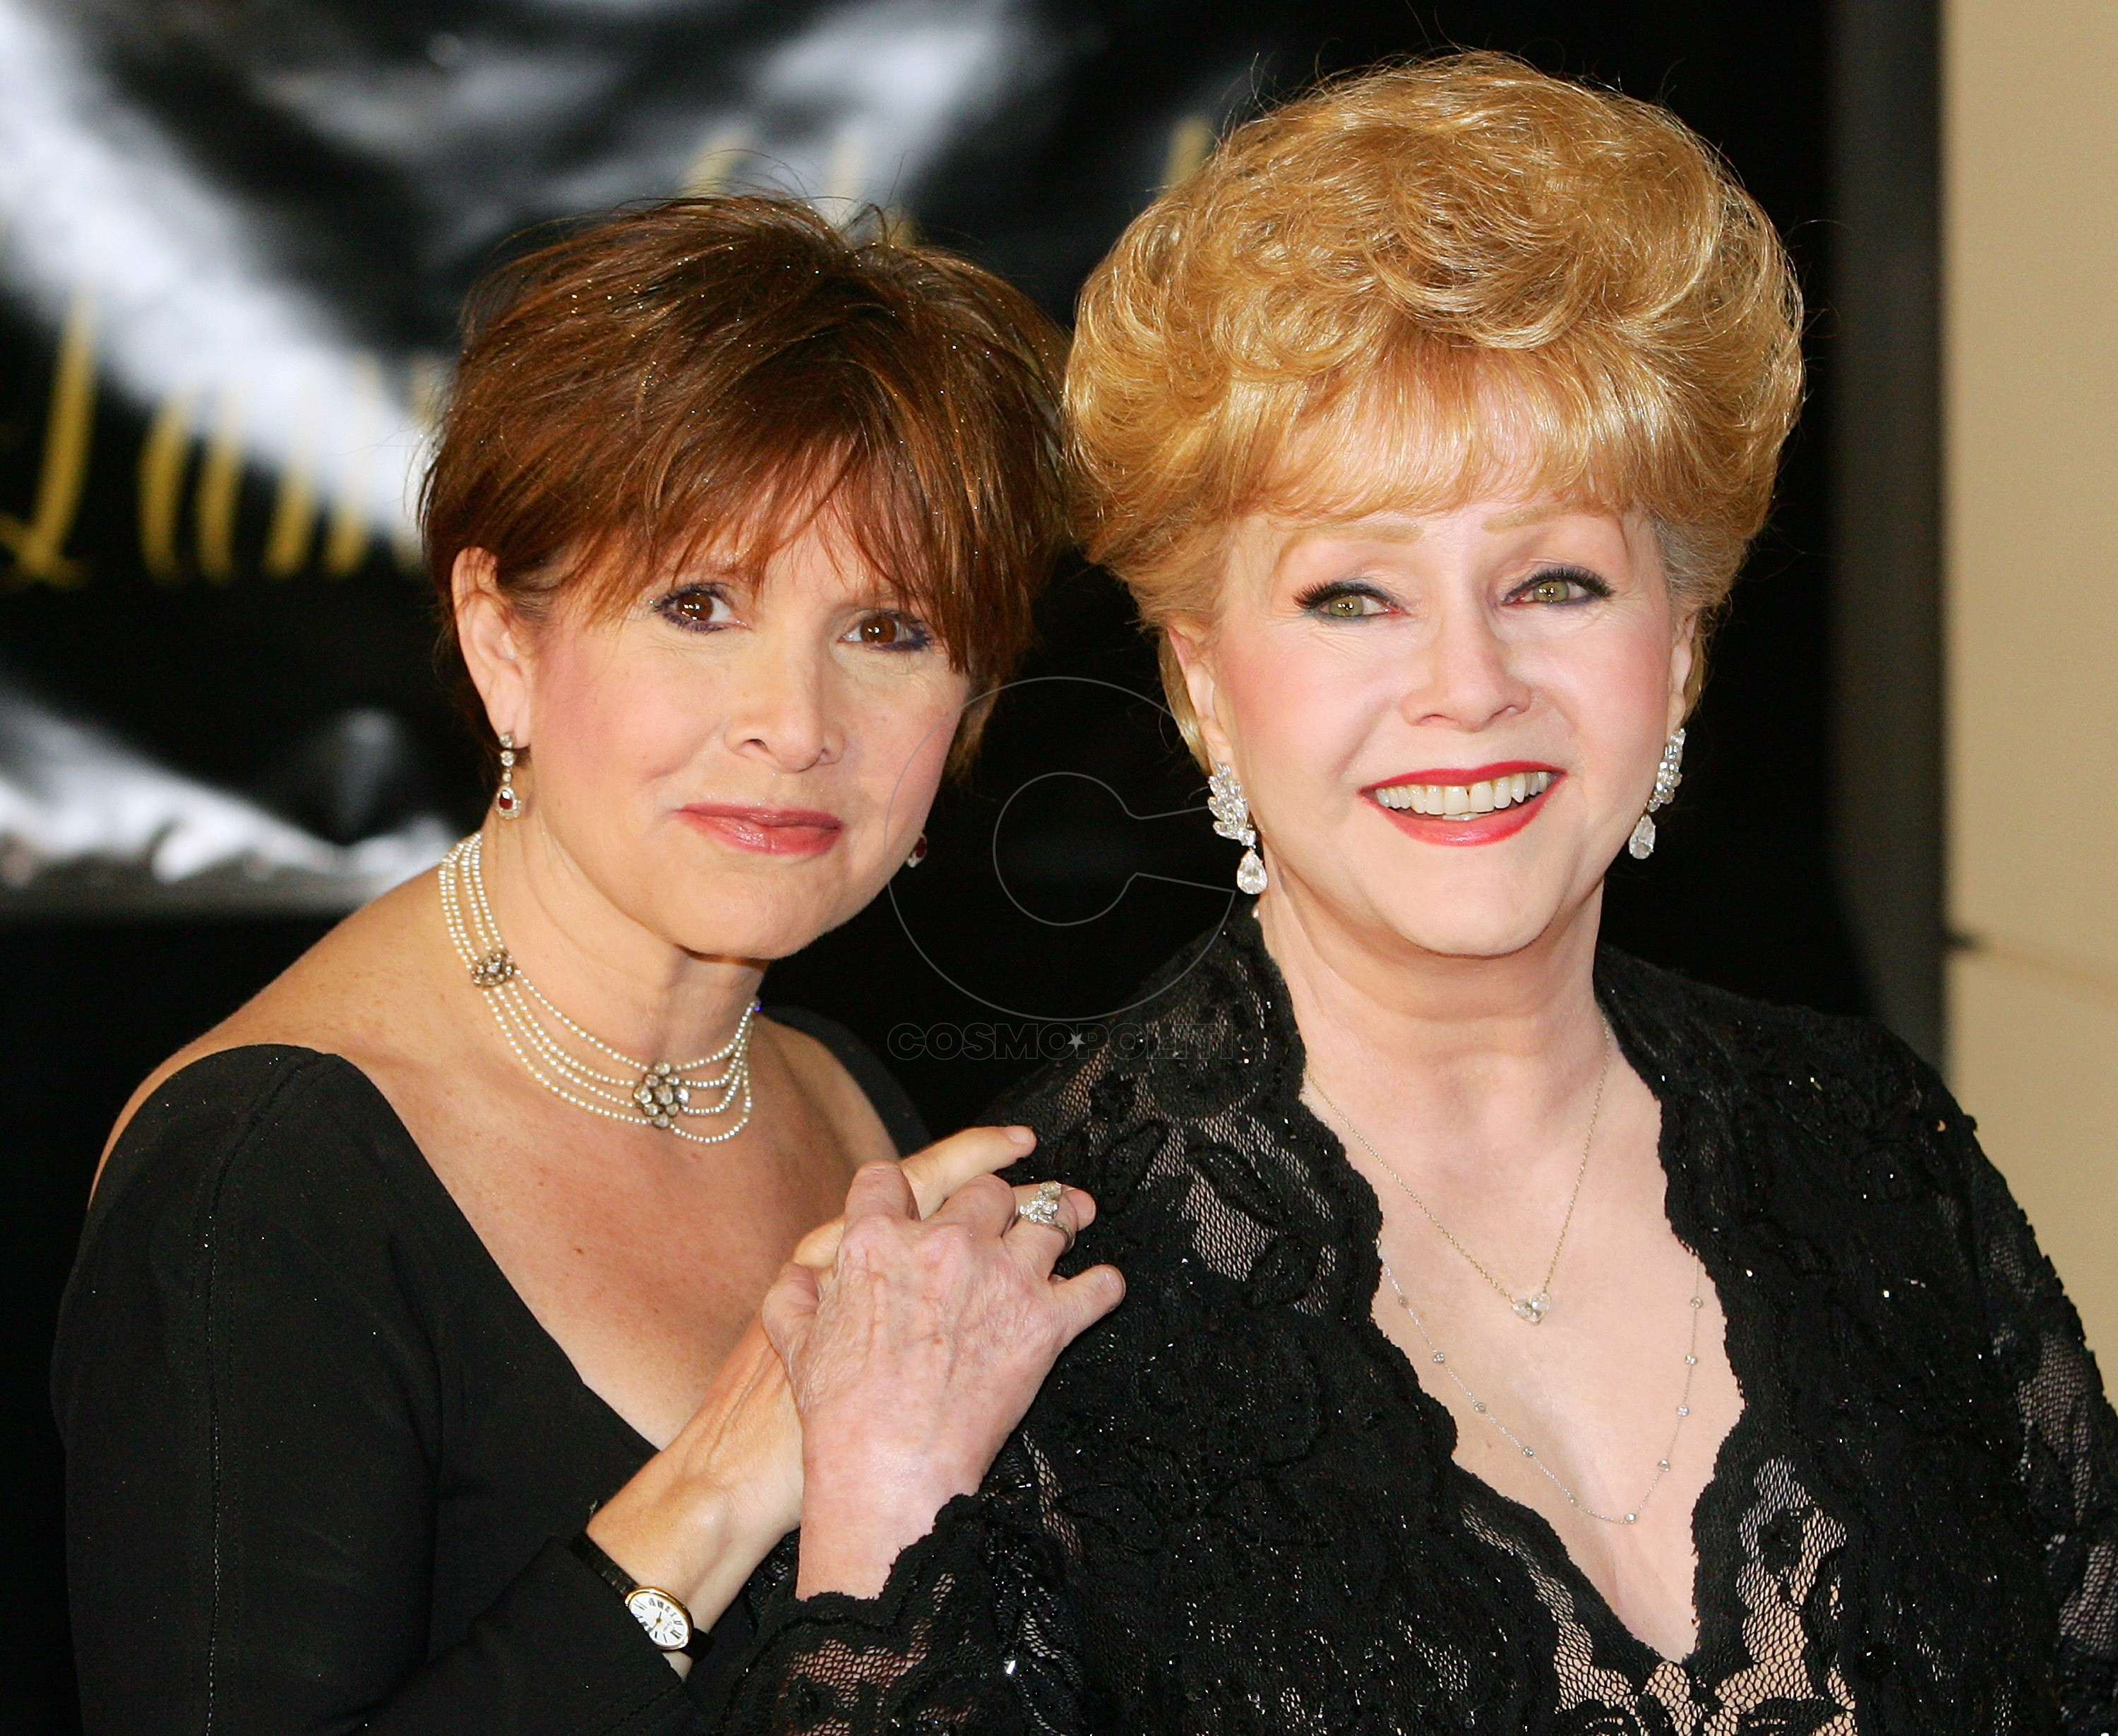 HENDERSON, NV - FEBRUARY 27:  Actress Carrie Fisher (L) and her mother, actress Debbie Reynolds, arrive for Dame Elizabeth Taylor's 75th birthday party at the Ritz-Carlton, Lake Las Vegas on February 27, 2007 in Henderson, Nevada.  (Photo by Ethan Miller/Getty Images)